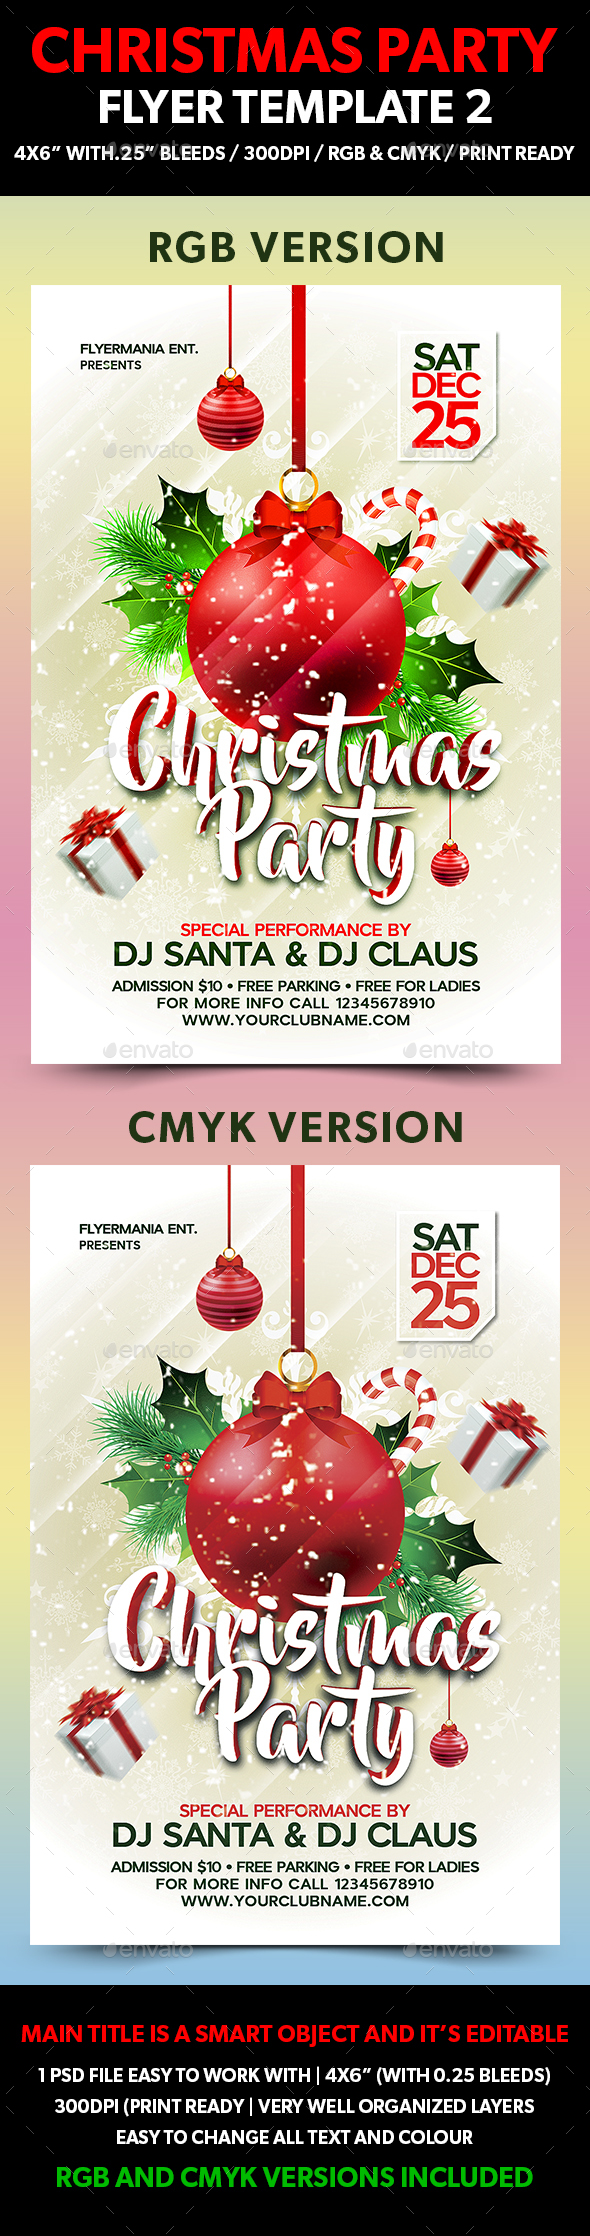 Christmas Party Flyer Template 2